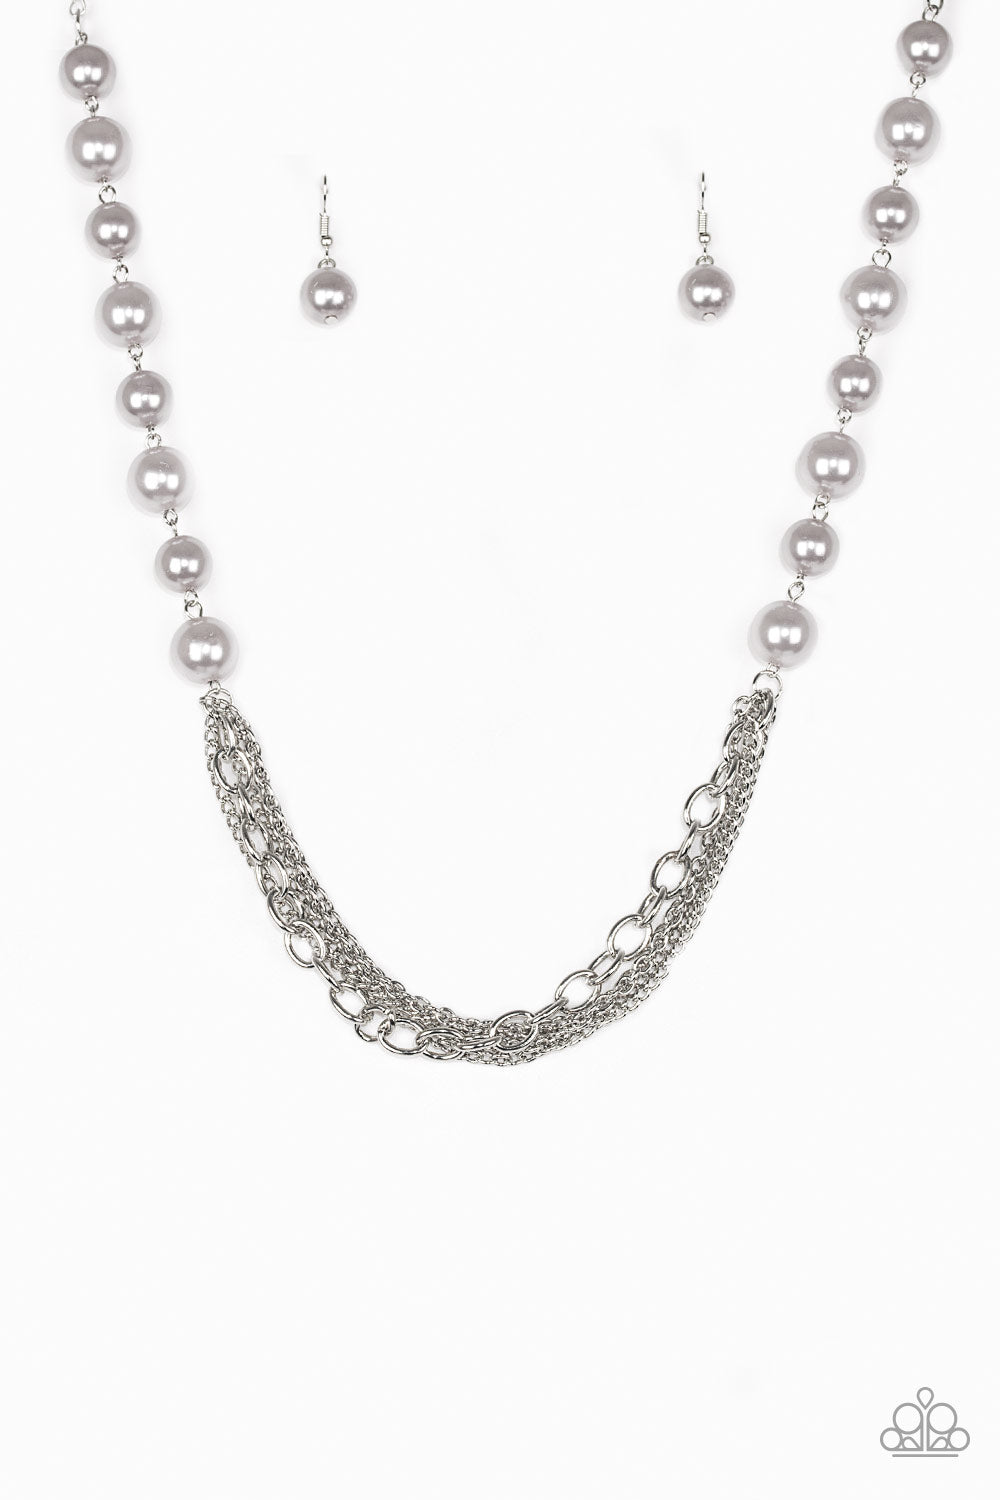 Paparazzi Accessories - Paparazzi Necklace - Runaway Bridesmaid - Pearly Silver multi chain - Necklaces